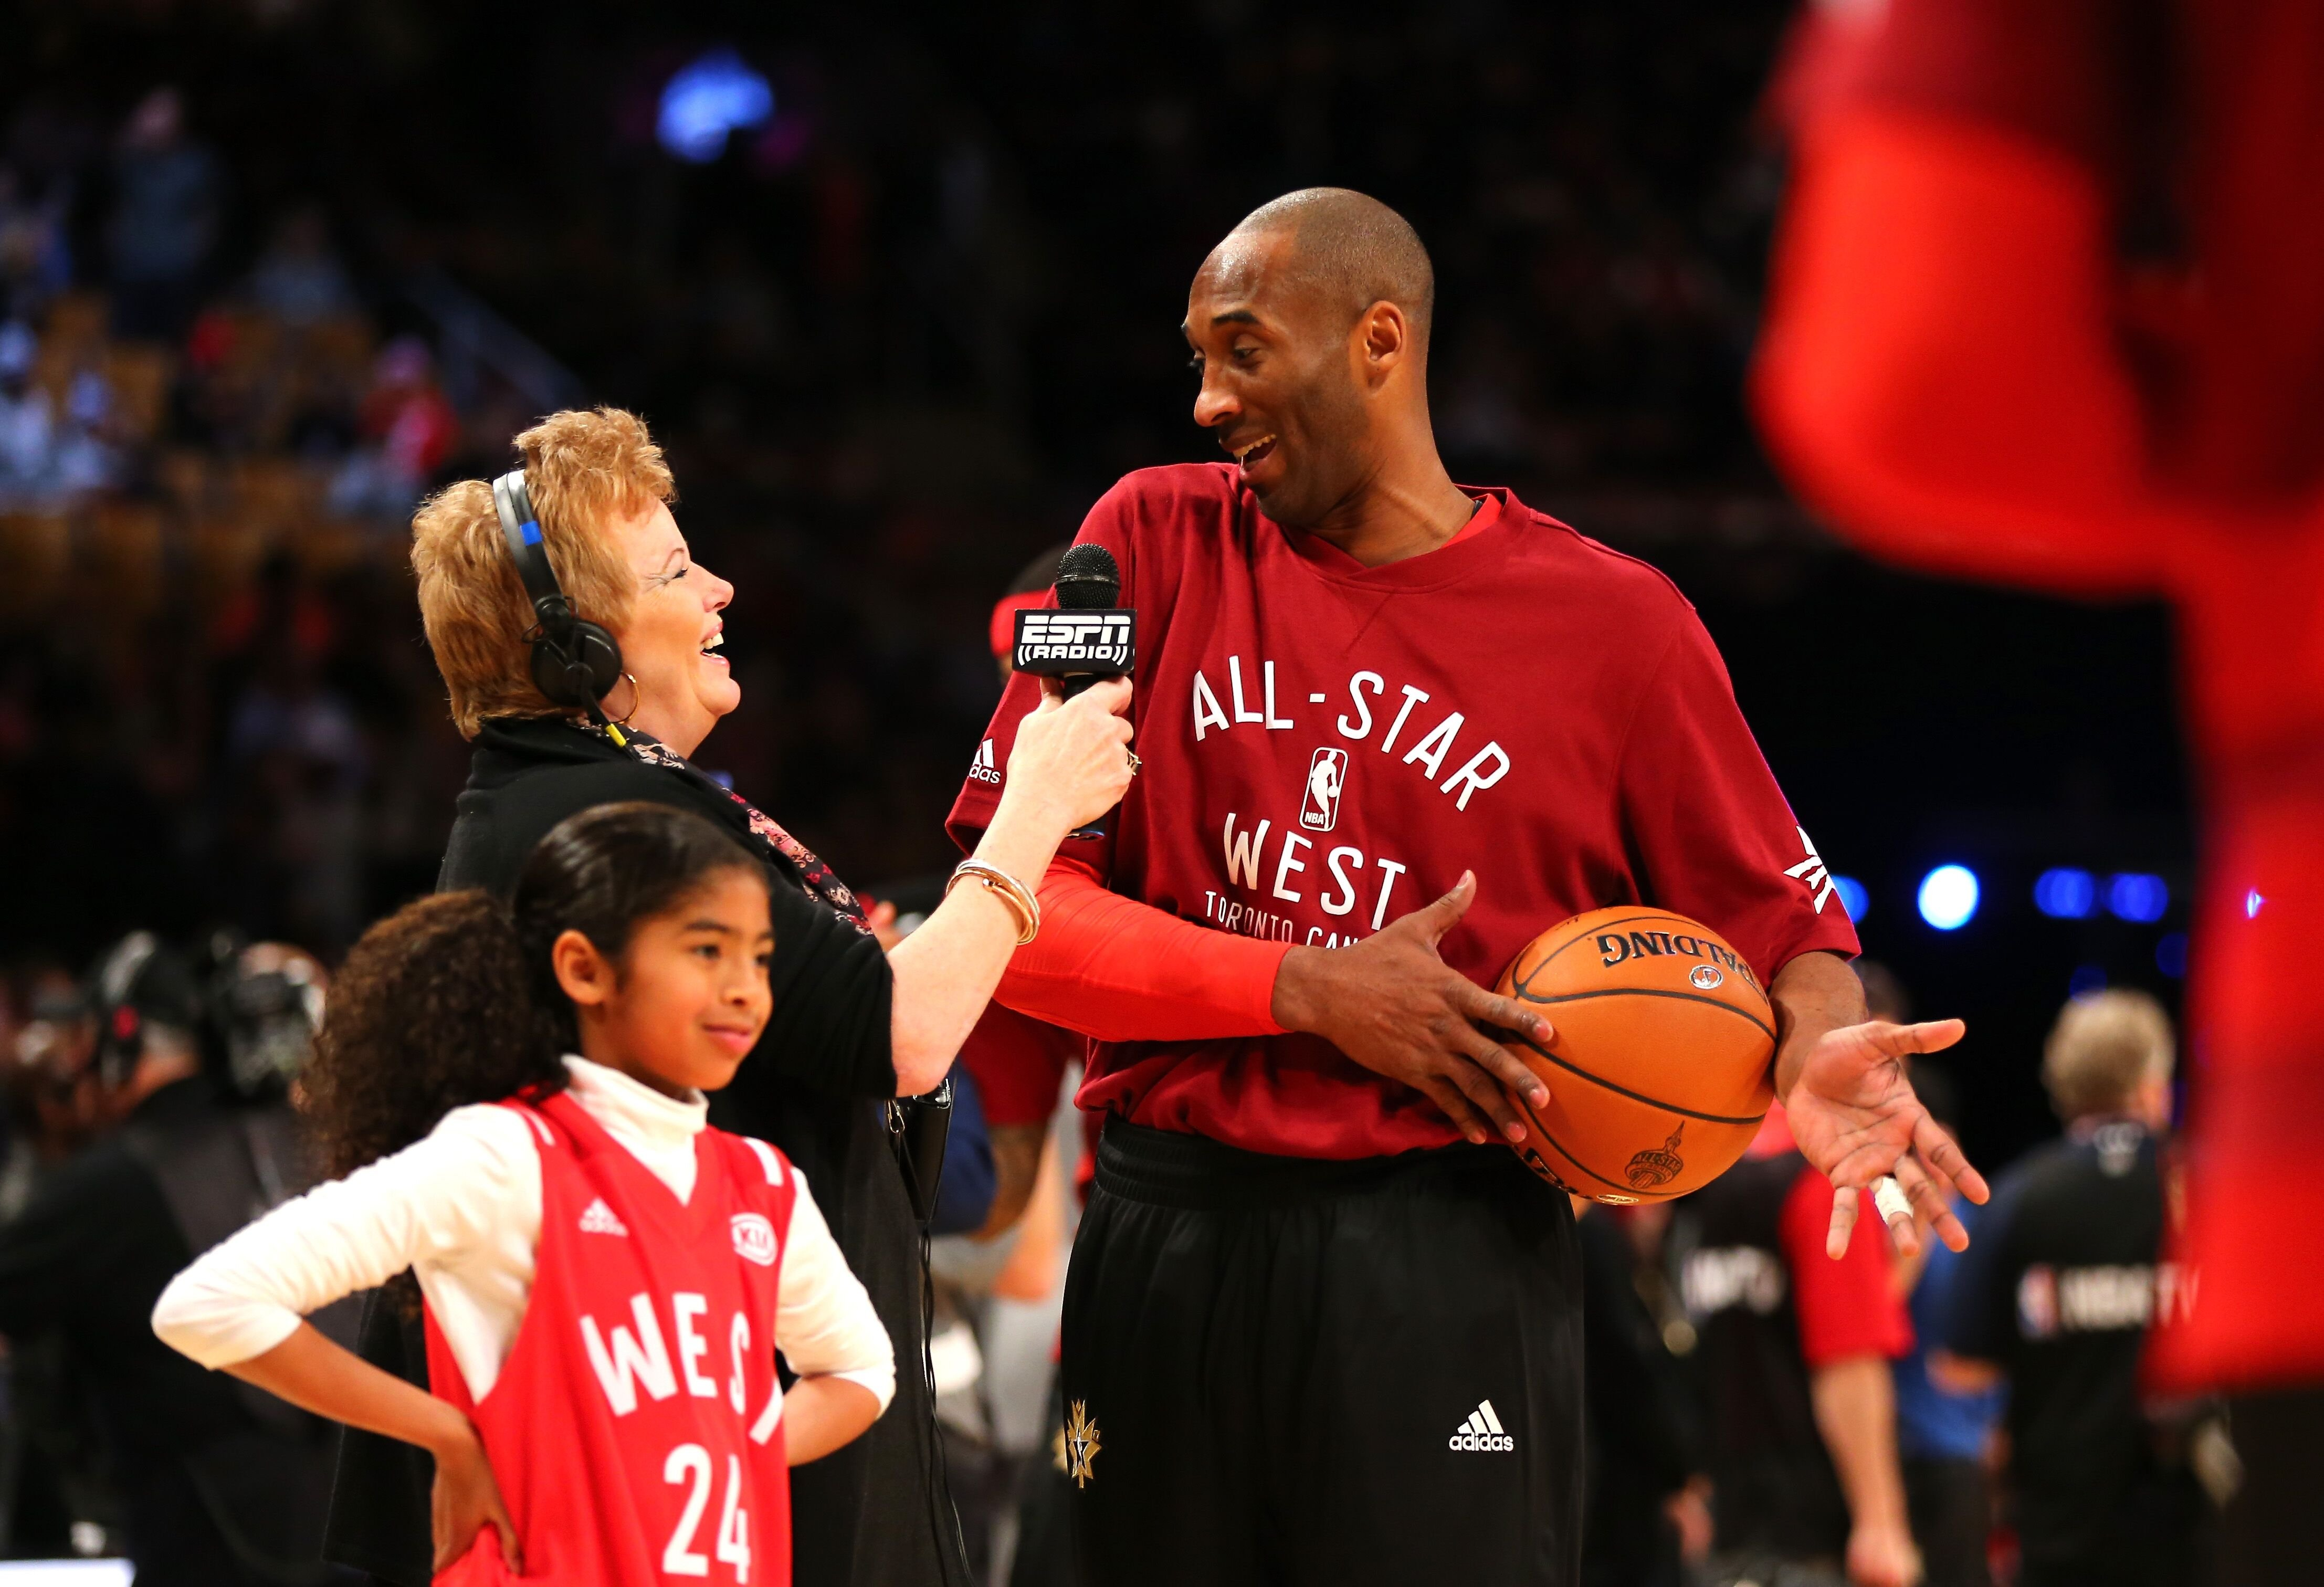 : Kobe Bryant talks to the media during the West All-Stars practice alongside his daughter, Gianna/ Source: Getty Image